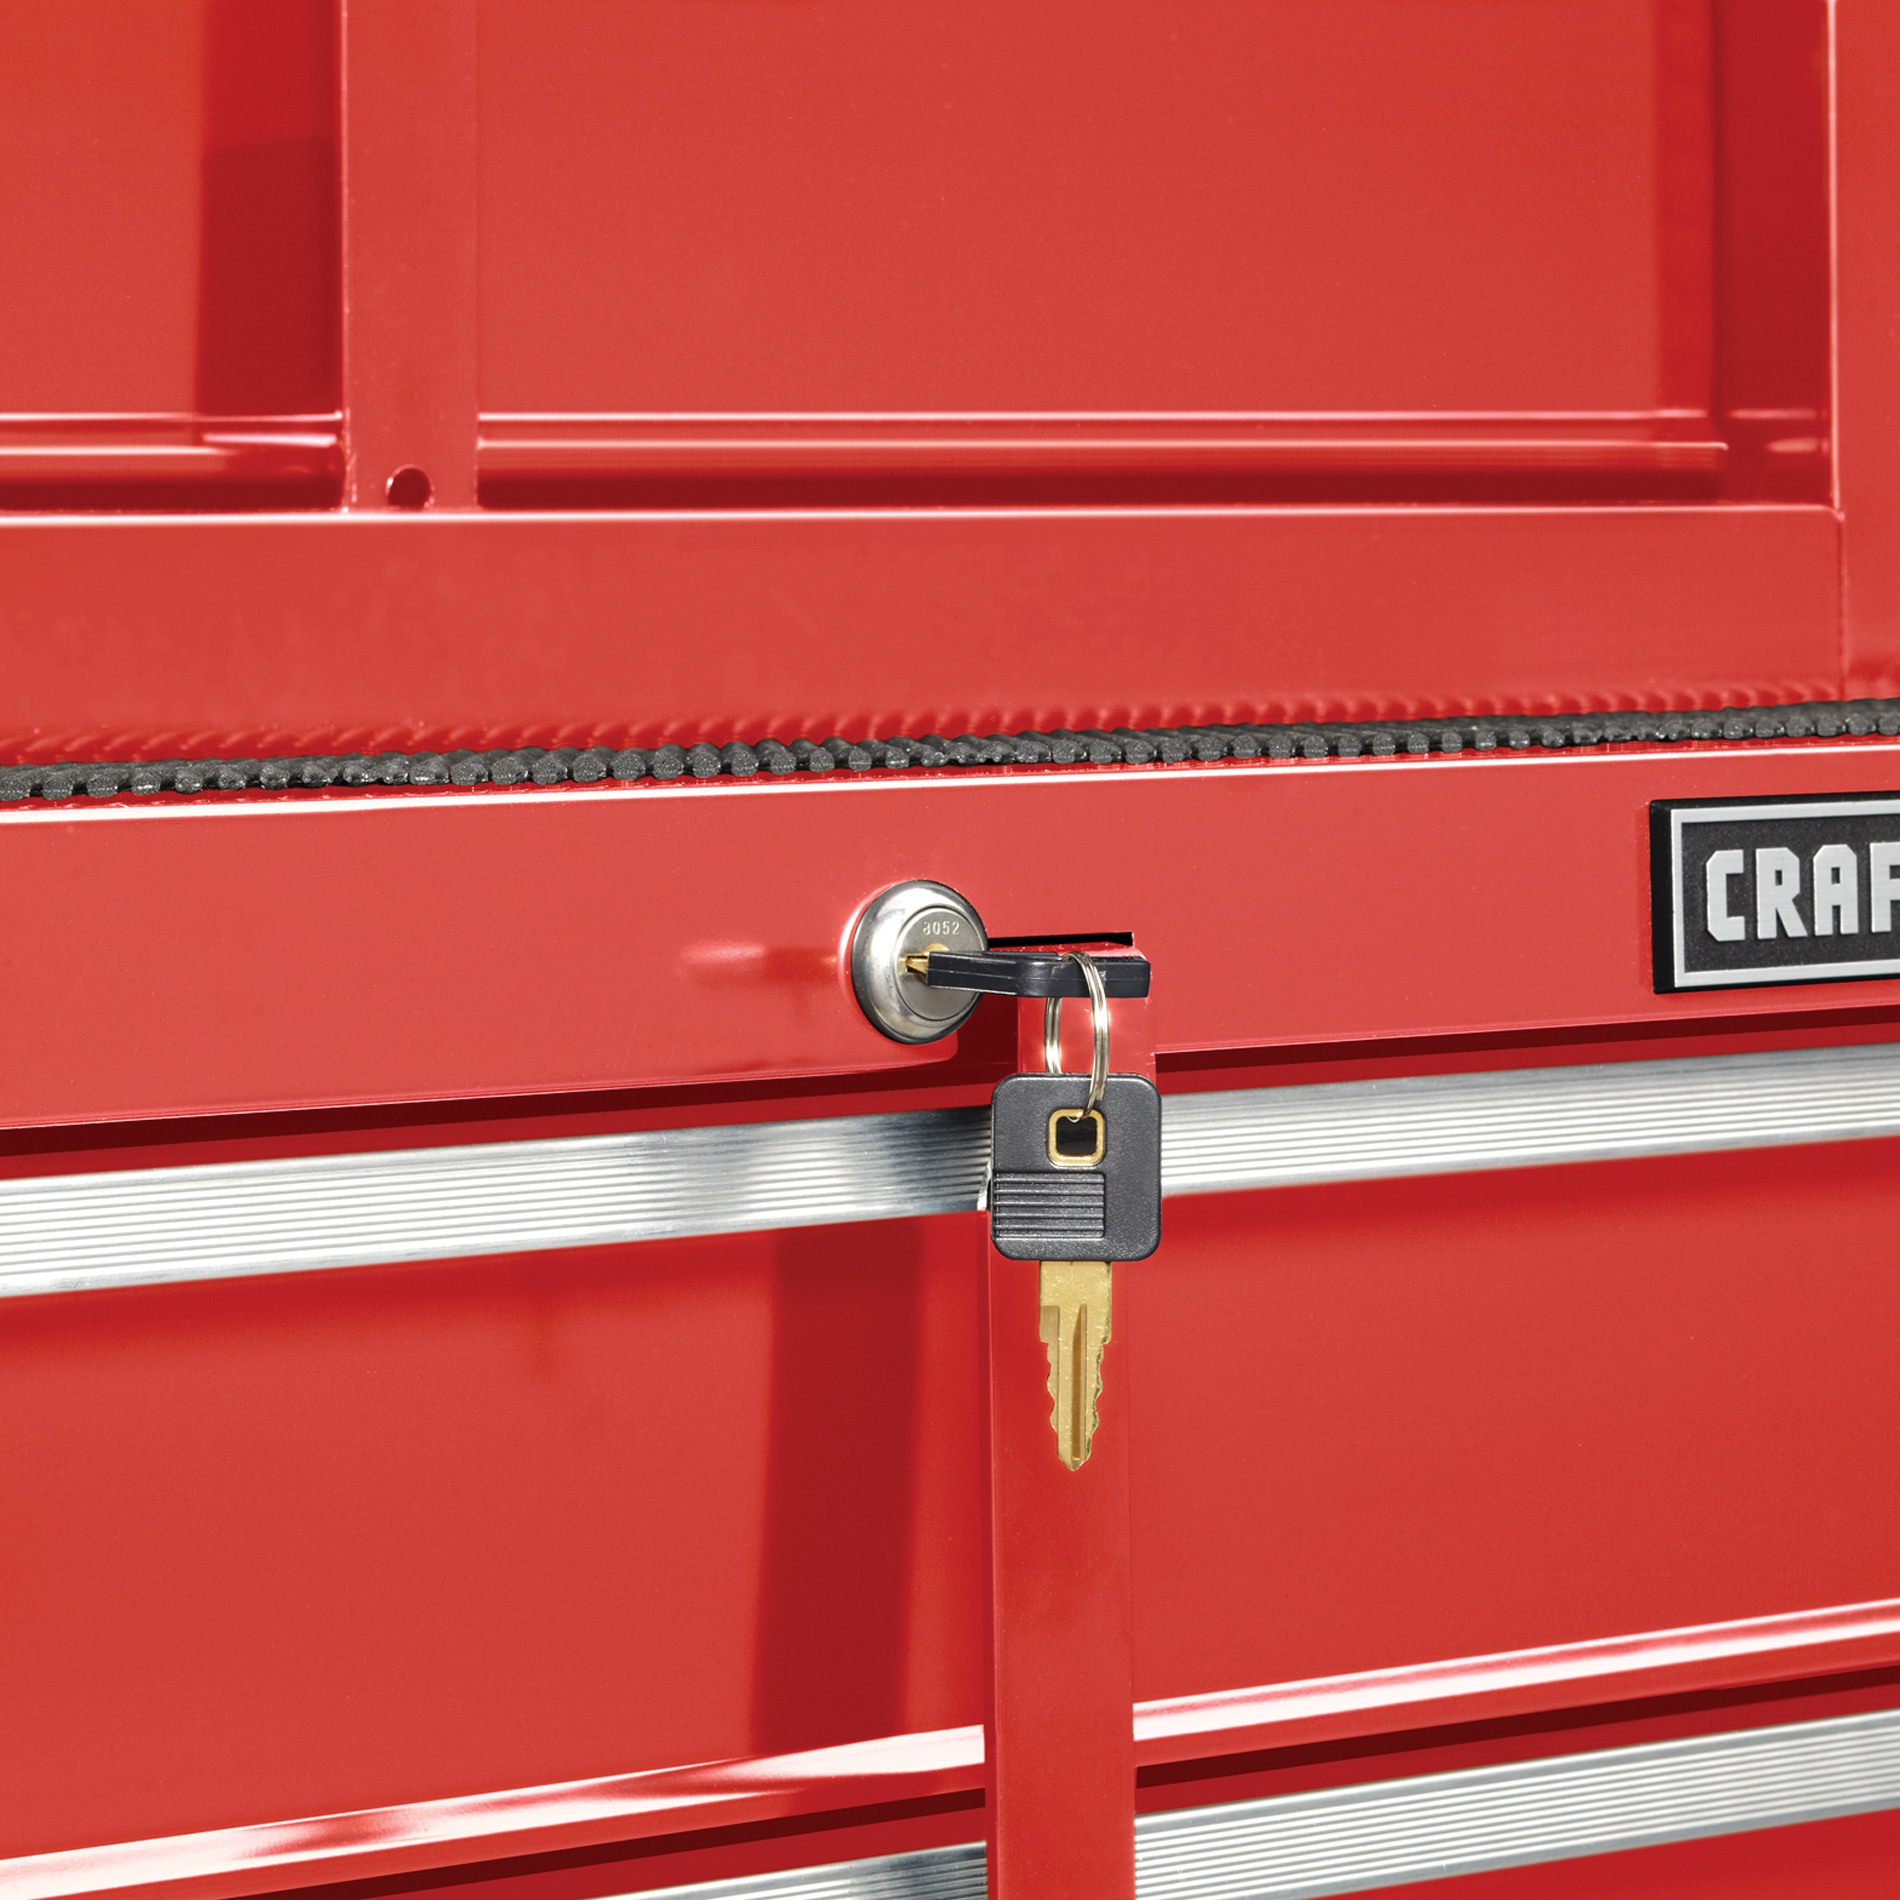 Craftsman 26 in. 4-Drawer Standard Duty Ball Bearing Rolling Cabinet - Red